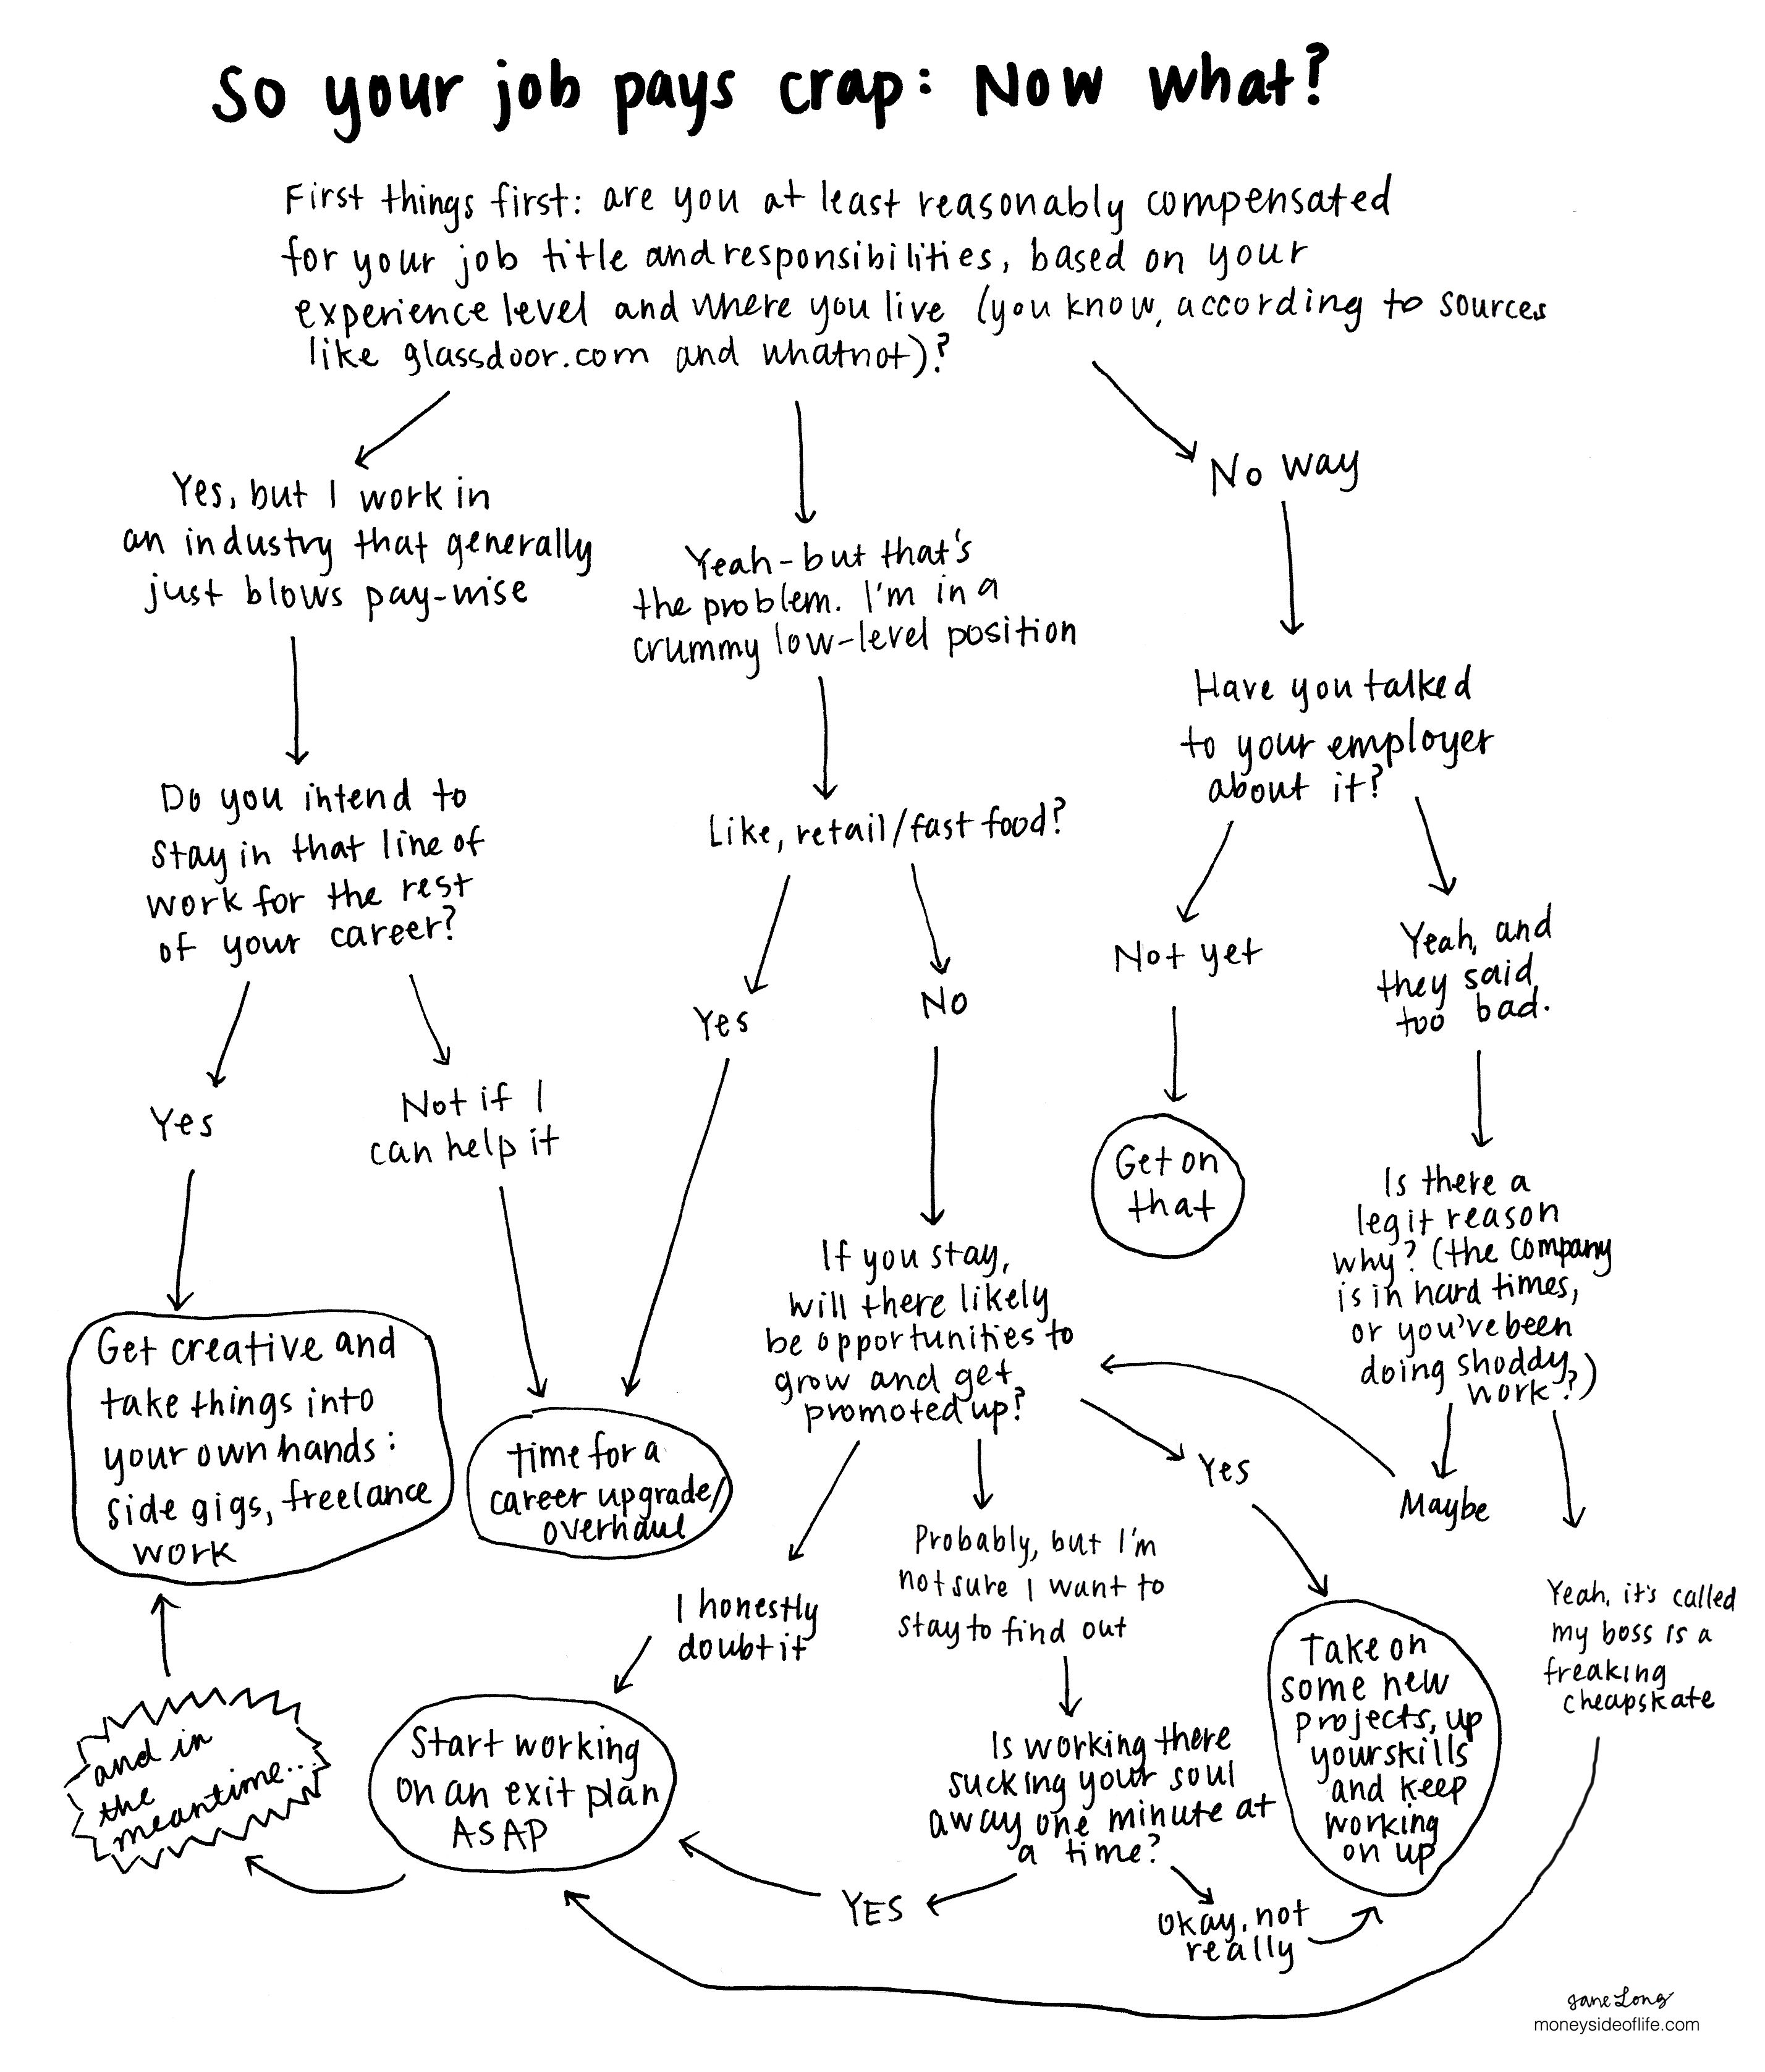 What to do when your job pays crap | Finance | Pinterest | Gráficos